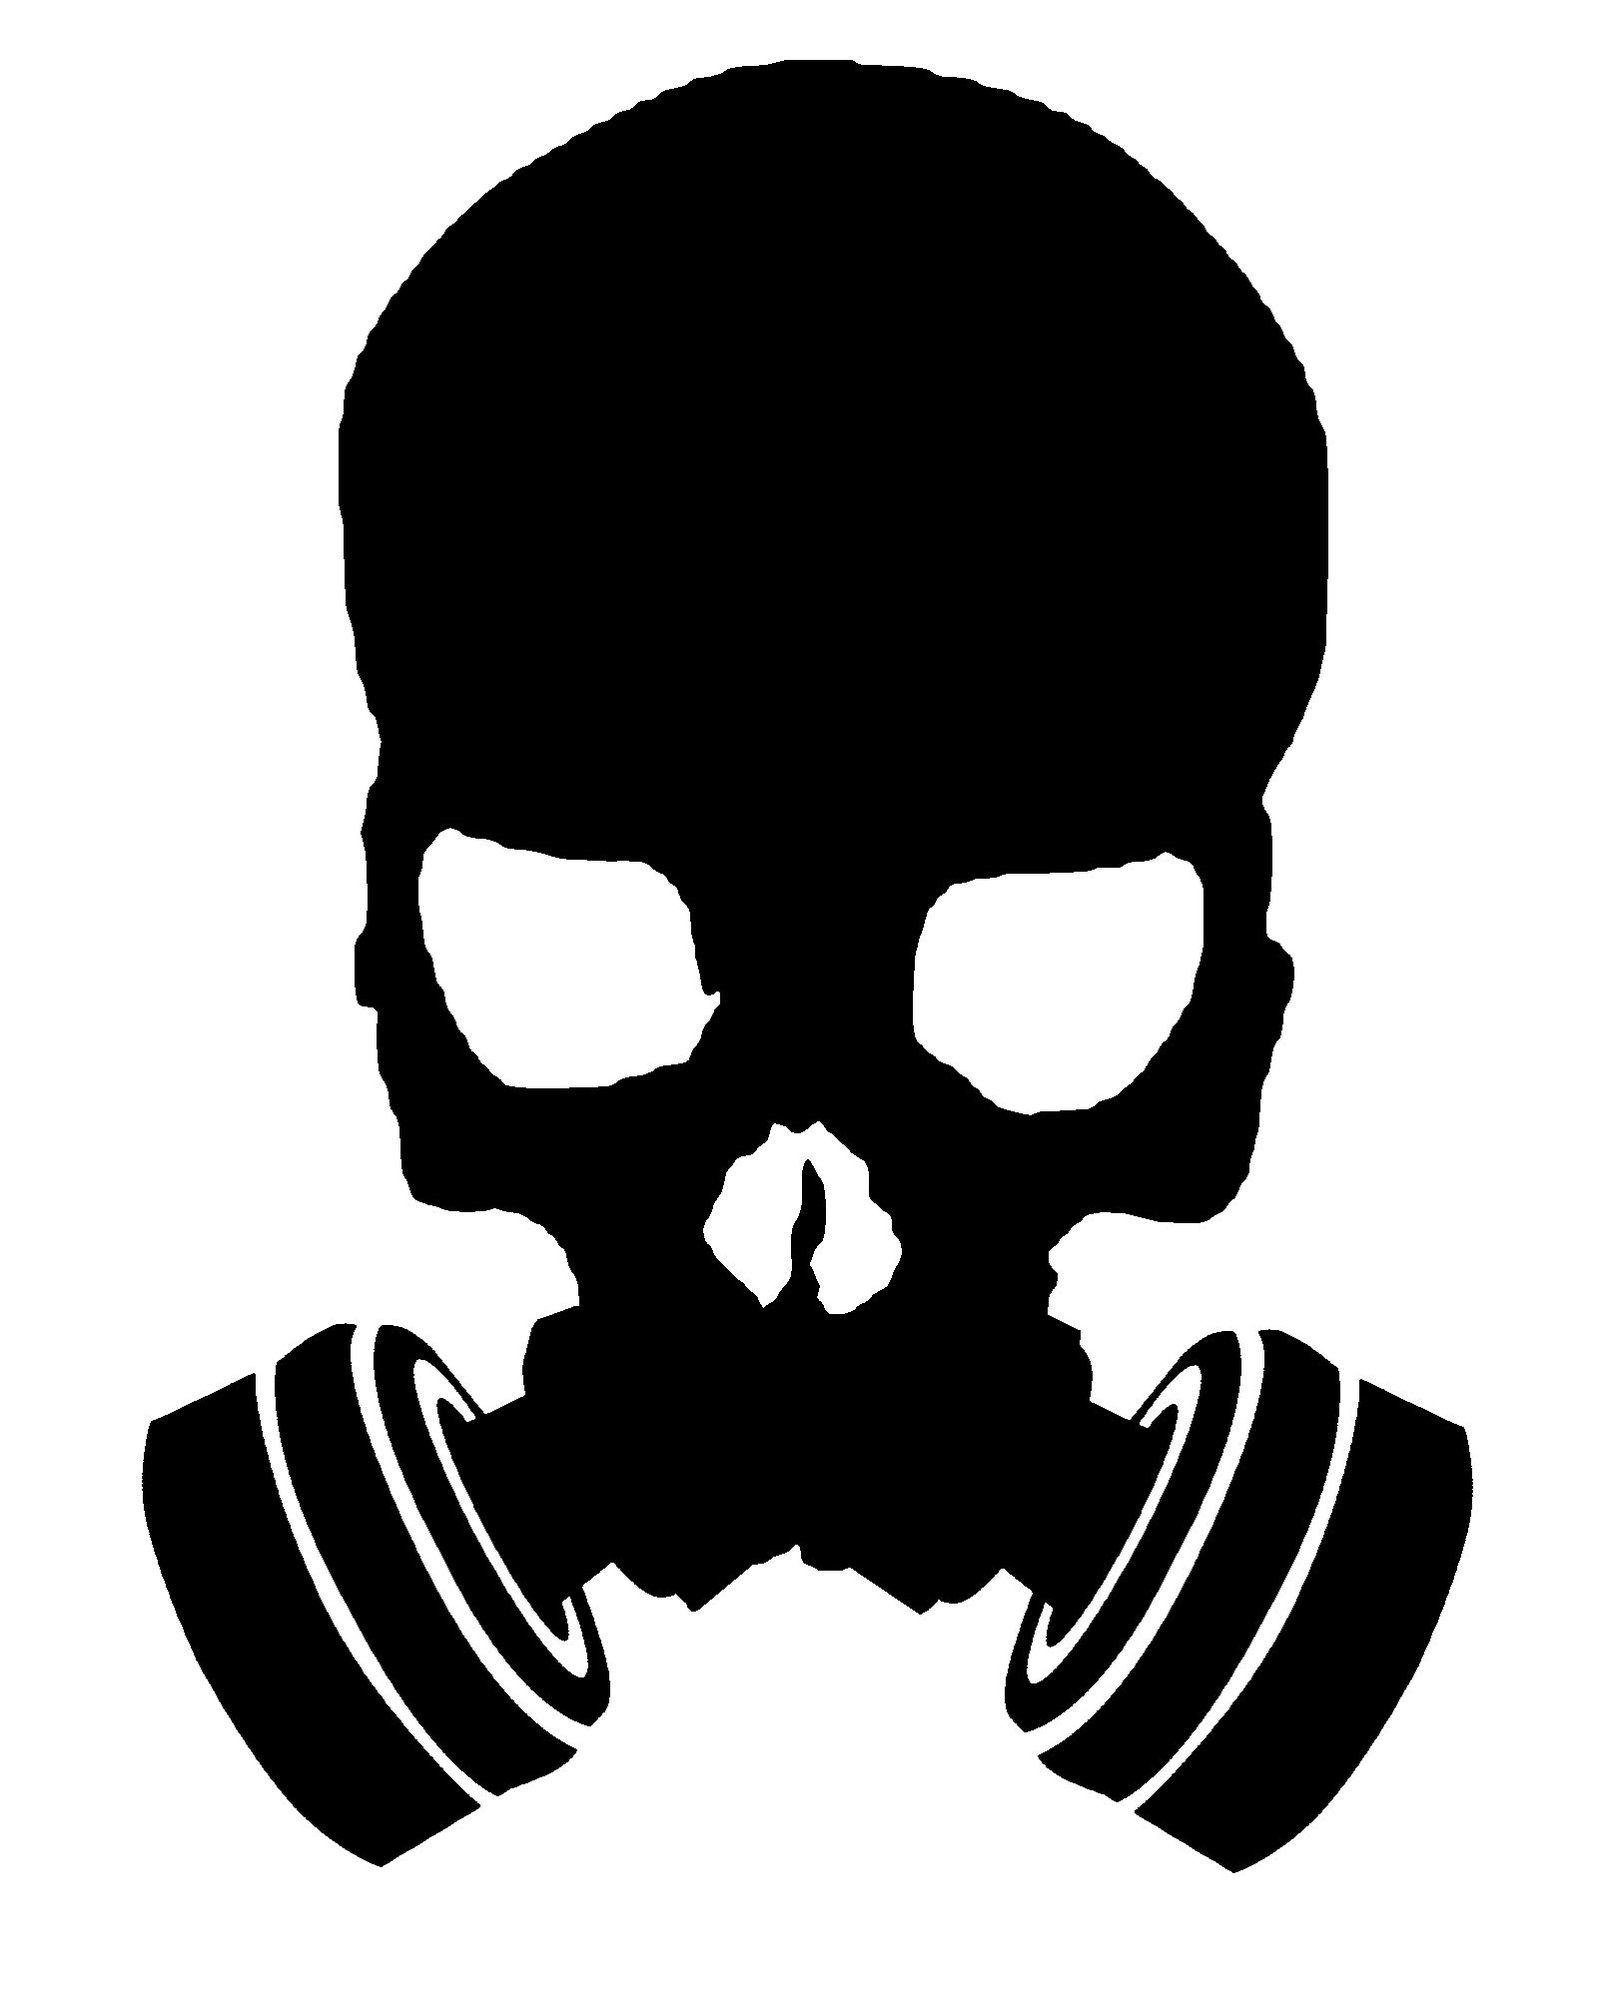 Skull mask clipart clipart library Free Gas Mask Cliparts, Download Free Clip Art, Free Clip ... clipart library